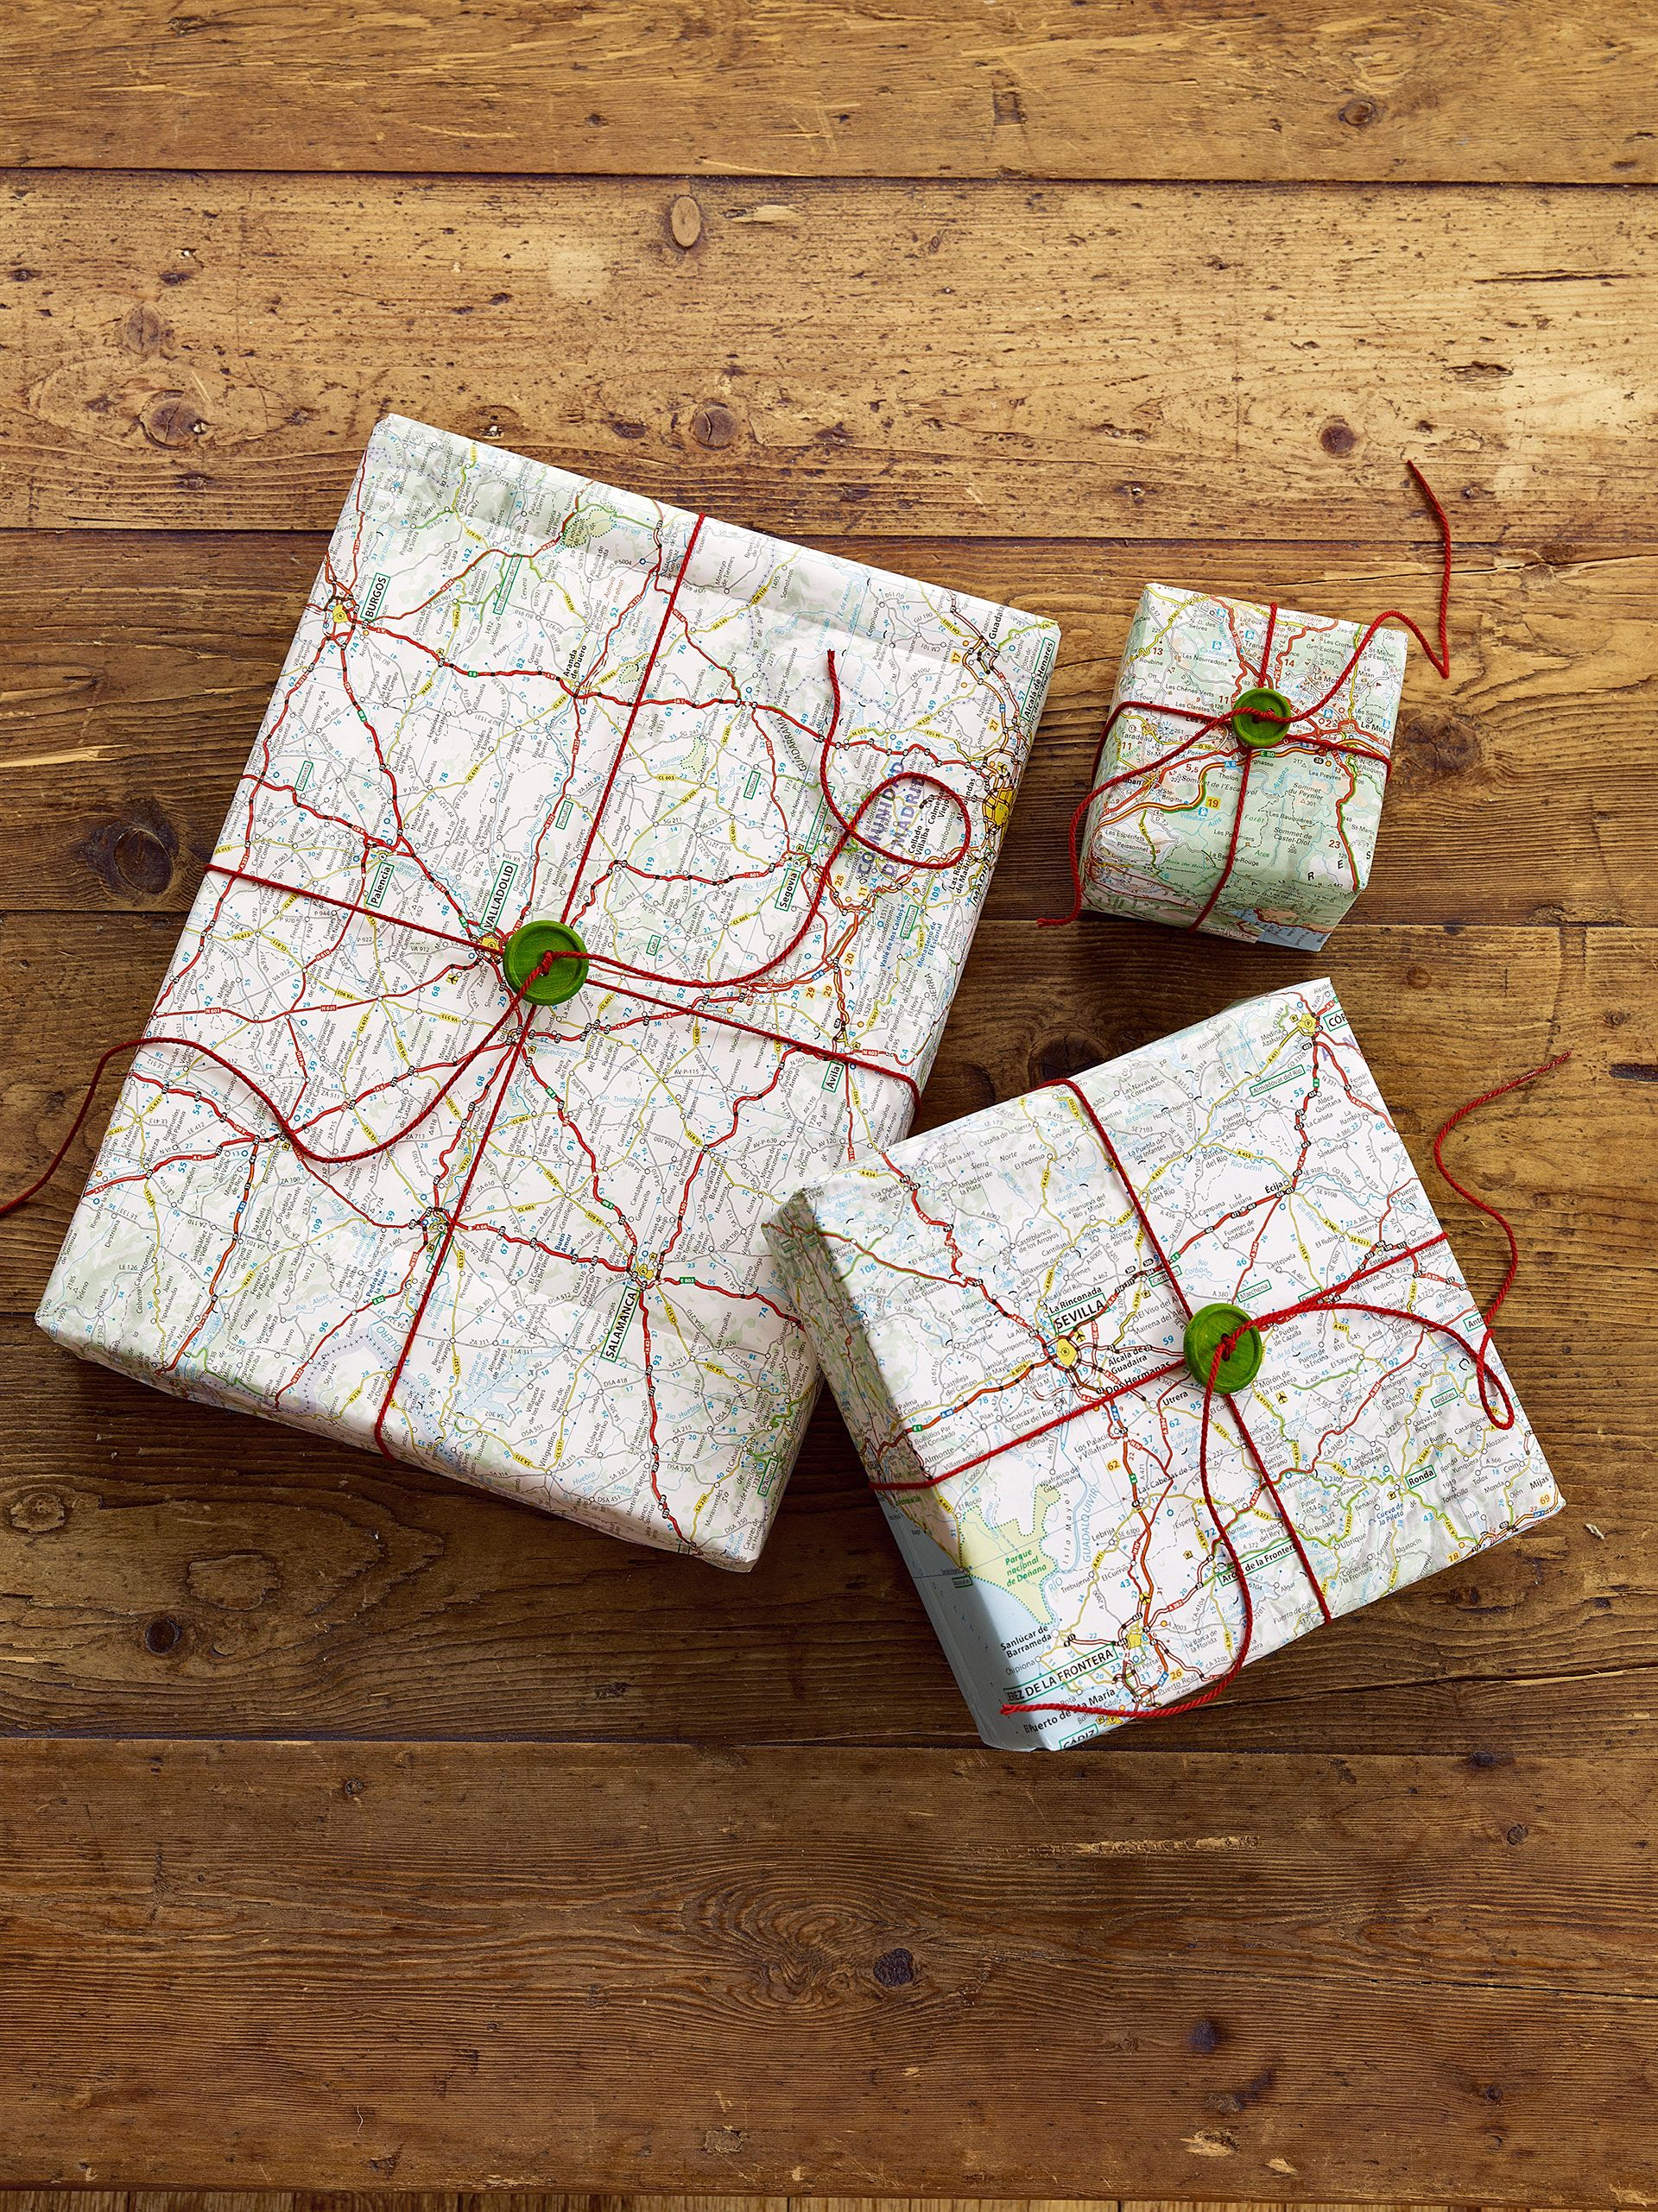 30 Holiday Craft Projects For a Very Merry Christmas   Cord  Wraps     This Christmas  wrap gifts with Road Map Gift Wrap  Instead of tying a bow  on top  thread thin cord through a vintage button and knot tightly to  secure